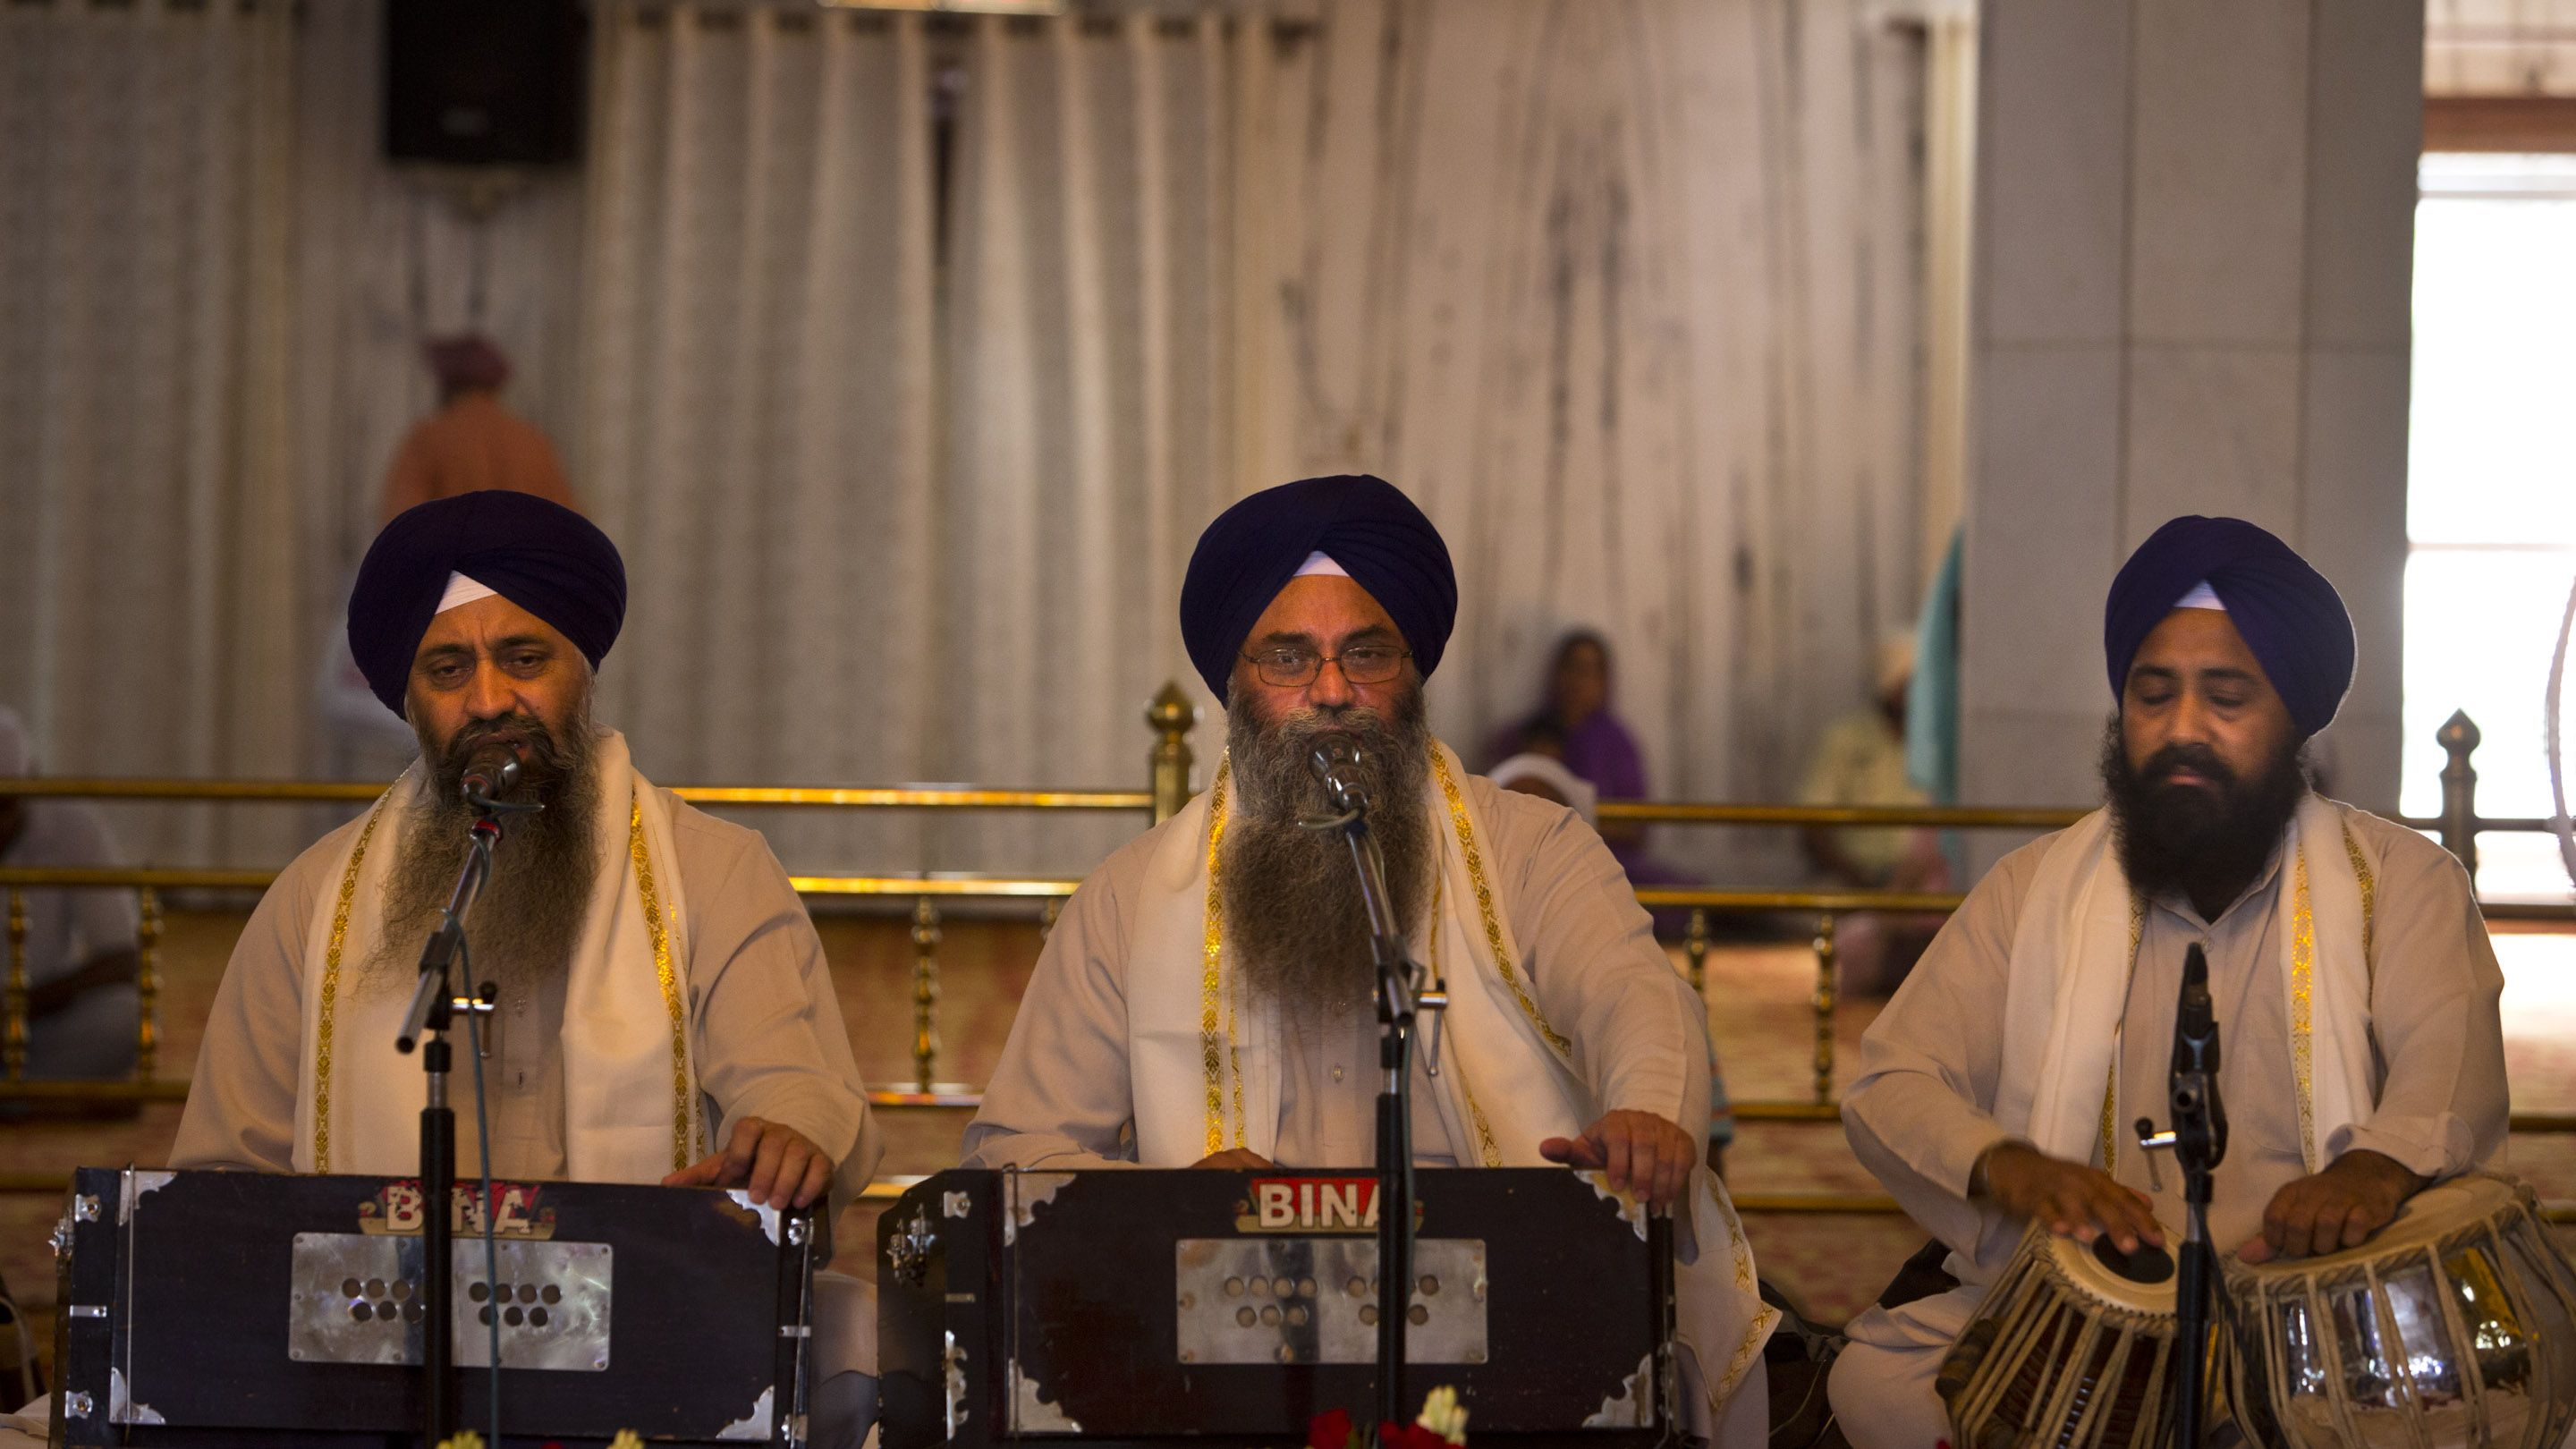 Pin on all things sikhism